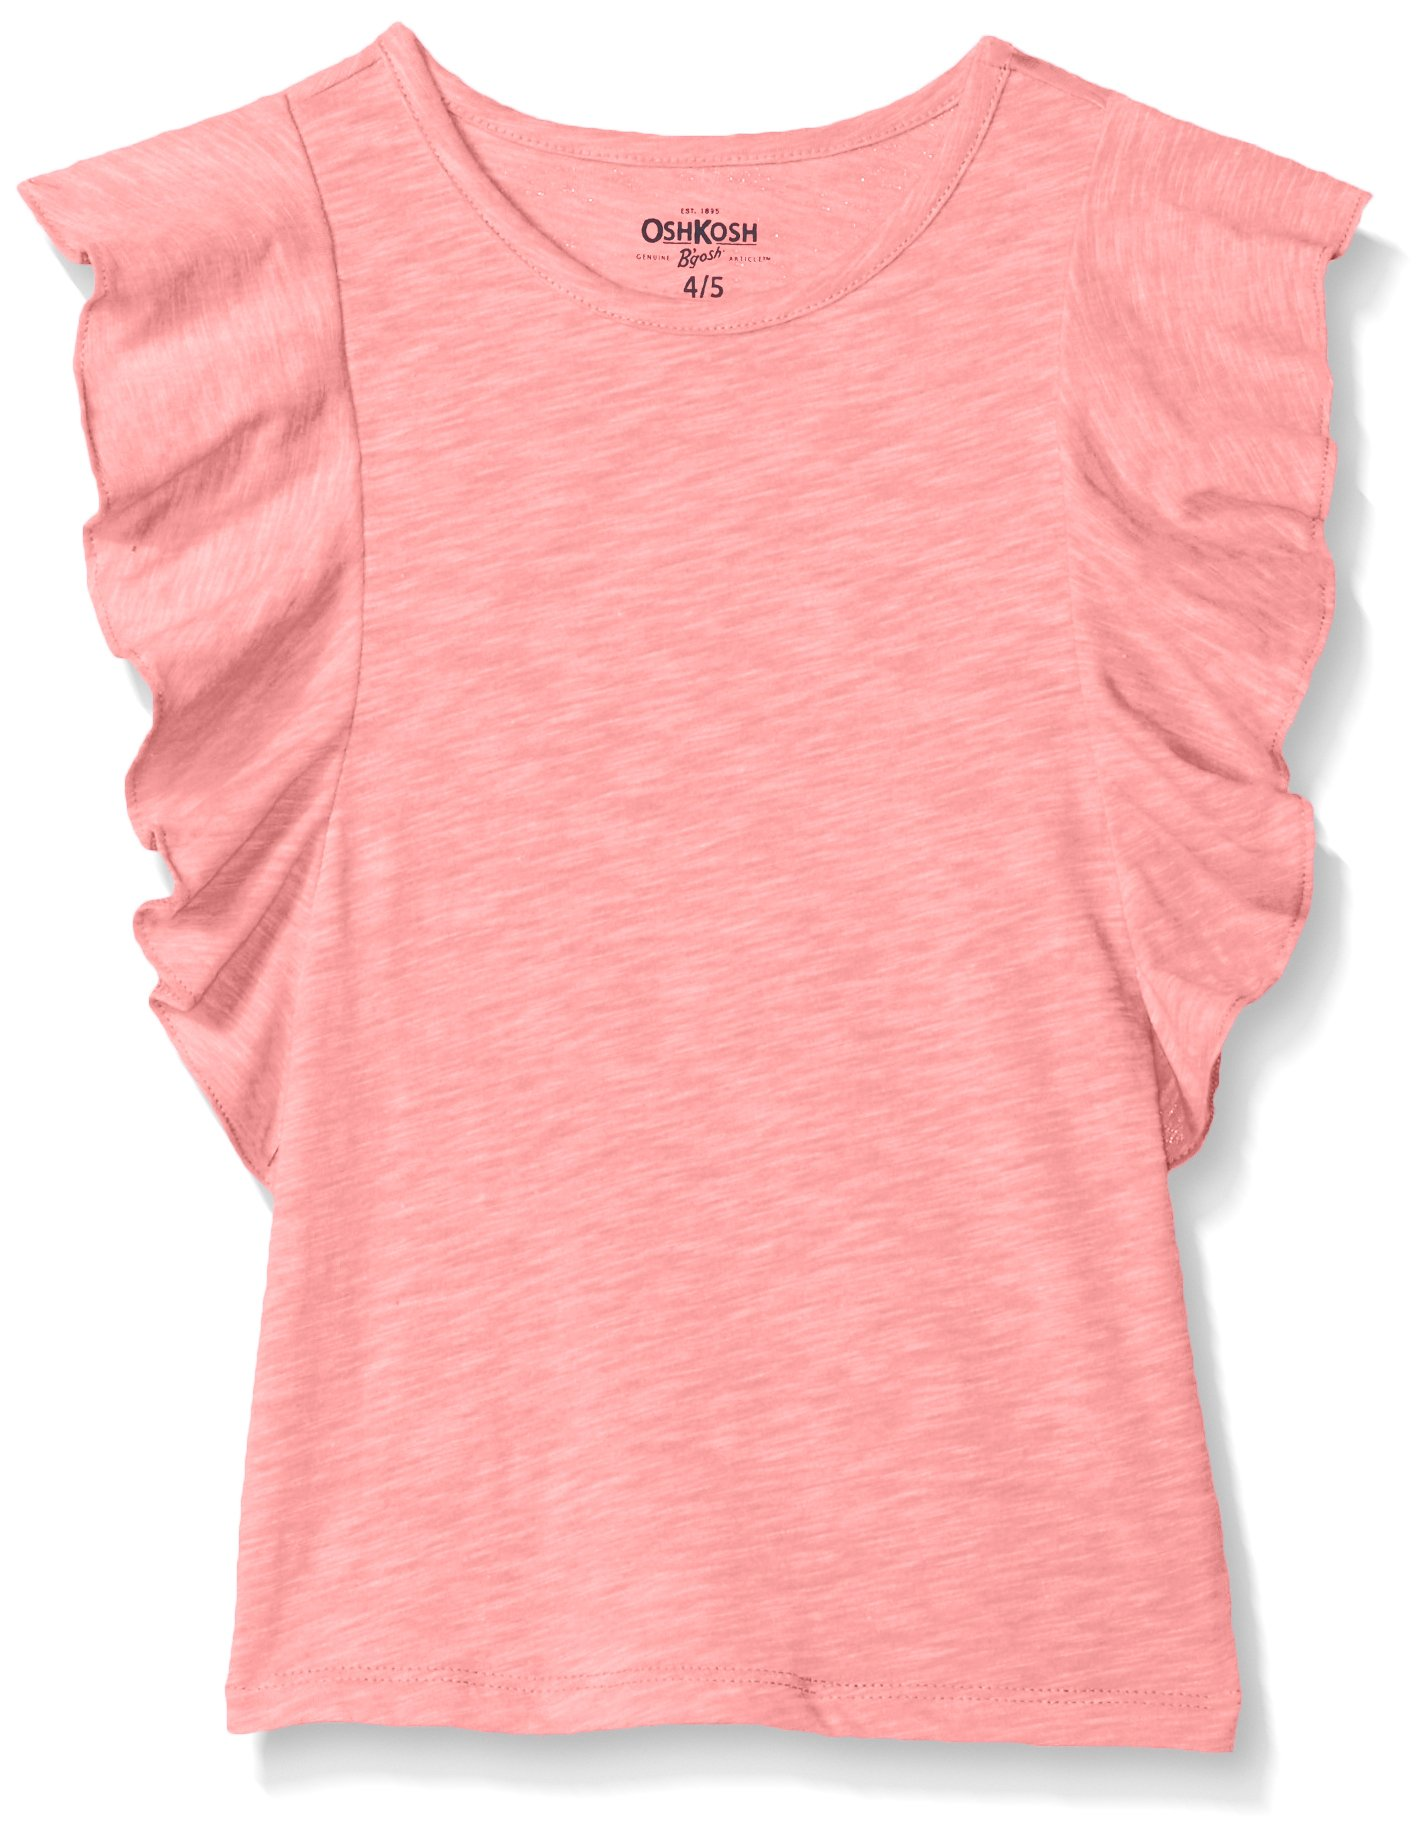 Osh Kosh Girls' Toddler Fashion Tops, Bubble Pink, 2T